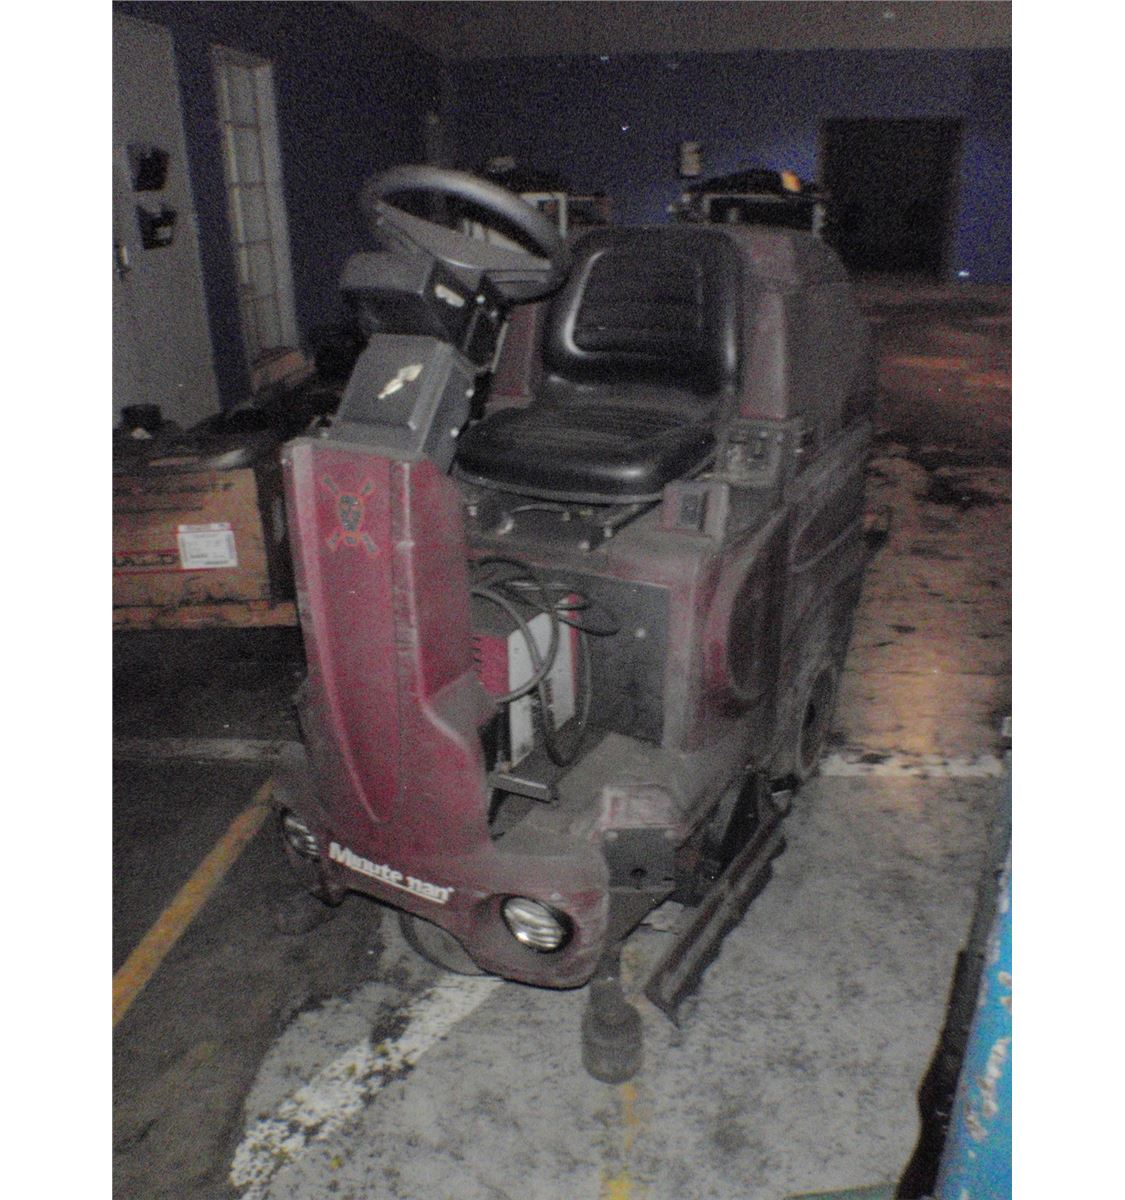 of machine floor cordless full chicago size indianapolis rental minuteman repair pictures magnificent troubleshooting commercial windsor floors scrubbers scrubber concept